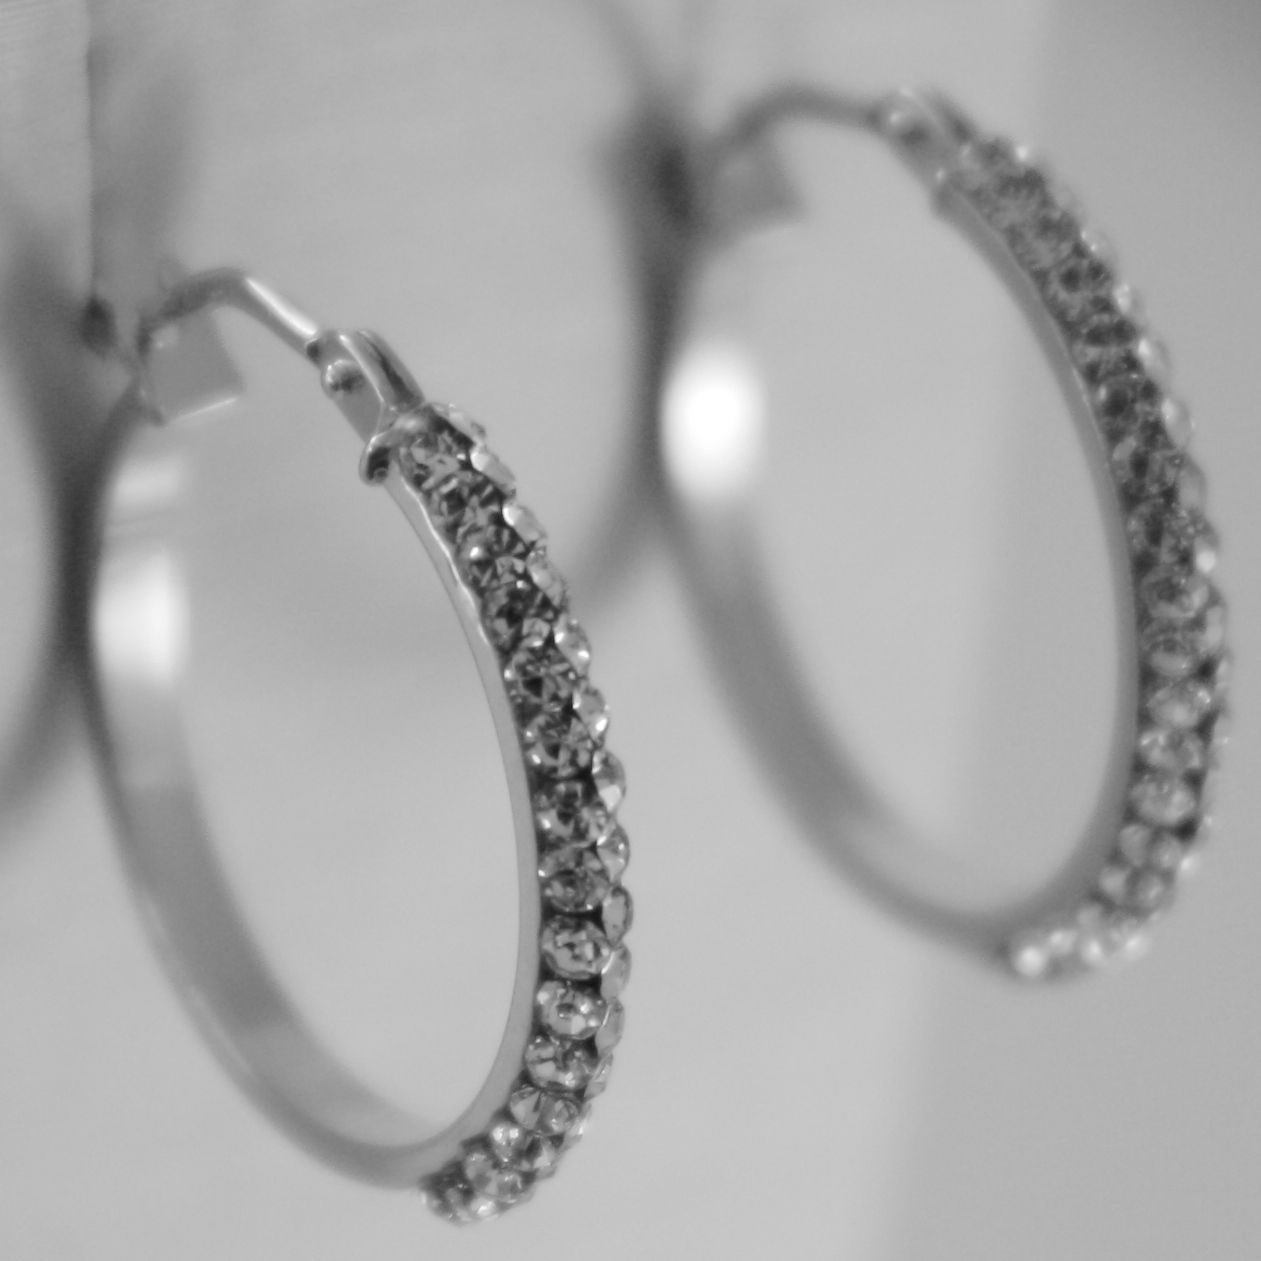 SOLID 18K WHITE GOLD CIRCLE HOOPS EARRINGS WITH ZIRCONIA BRIGHT MADE IN ITALY